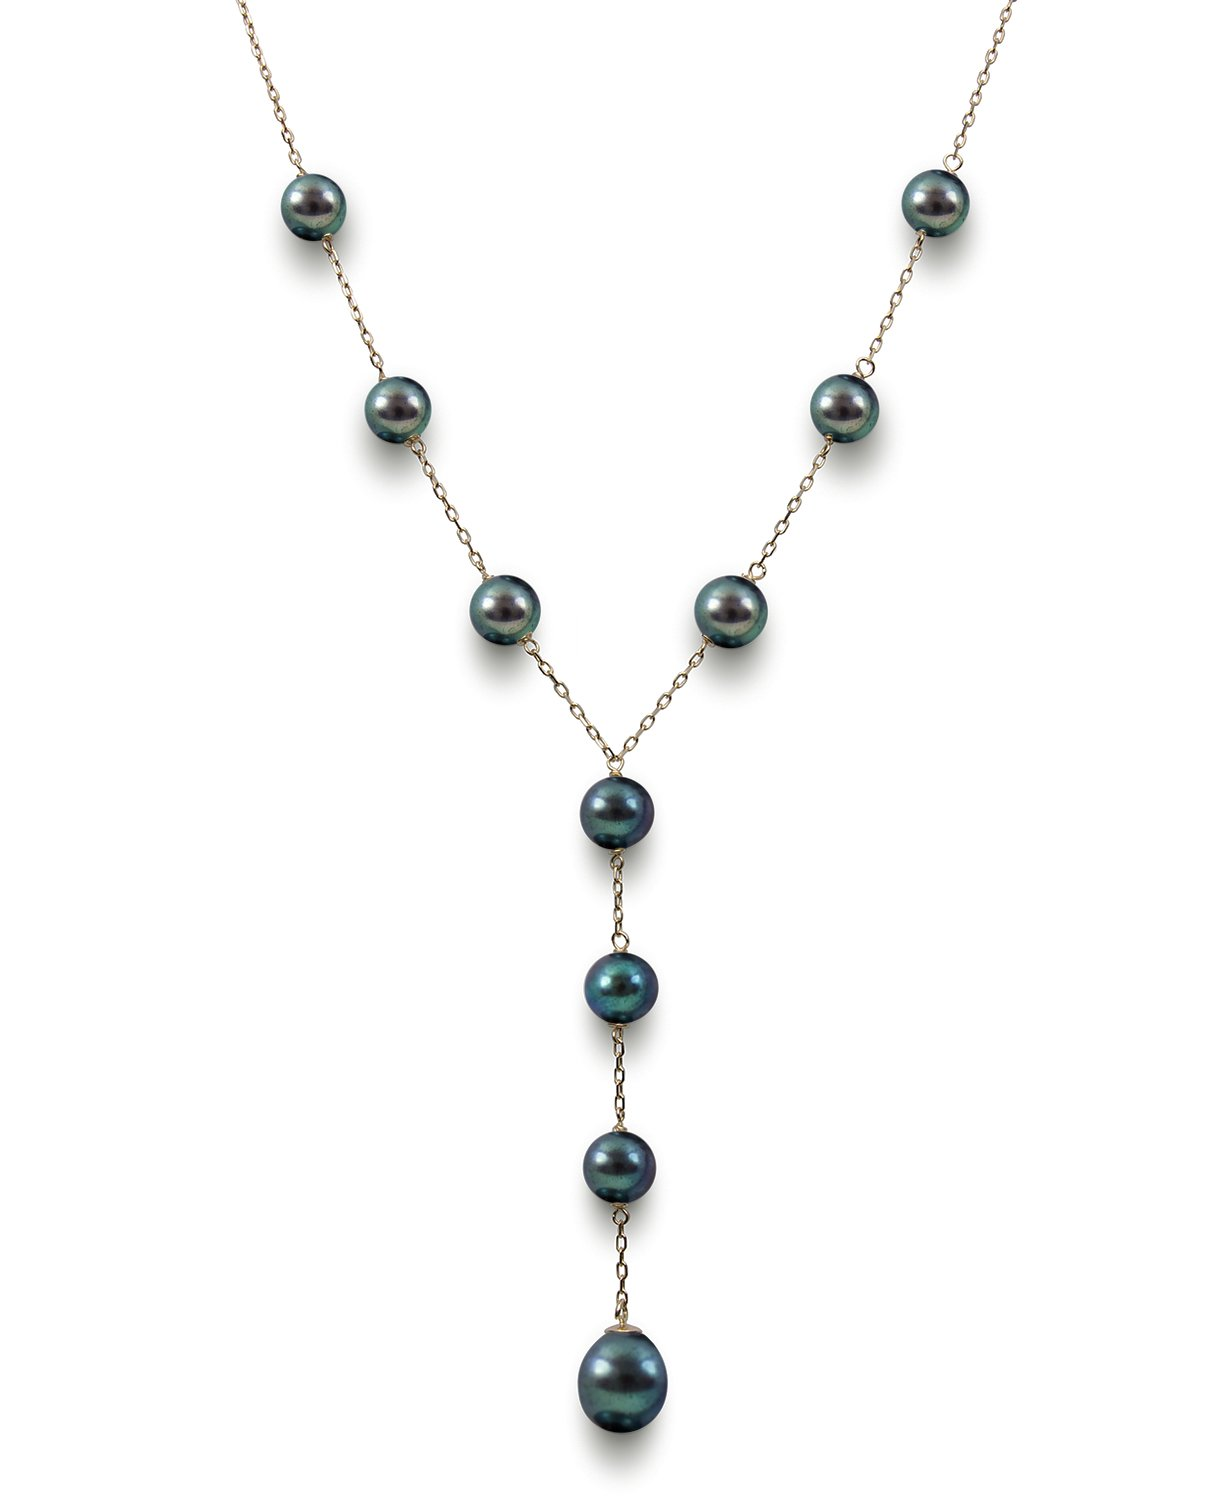 14k Yellow Gold Black Cultured Freshwater Pearl Y Shaped Station Necklace, 17.5''